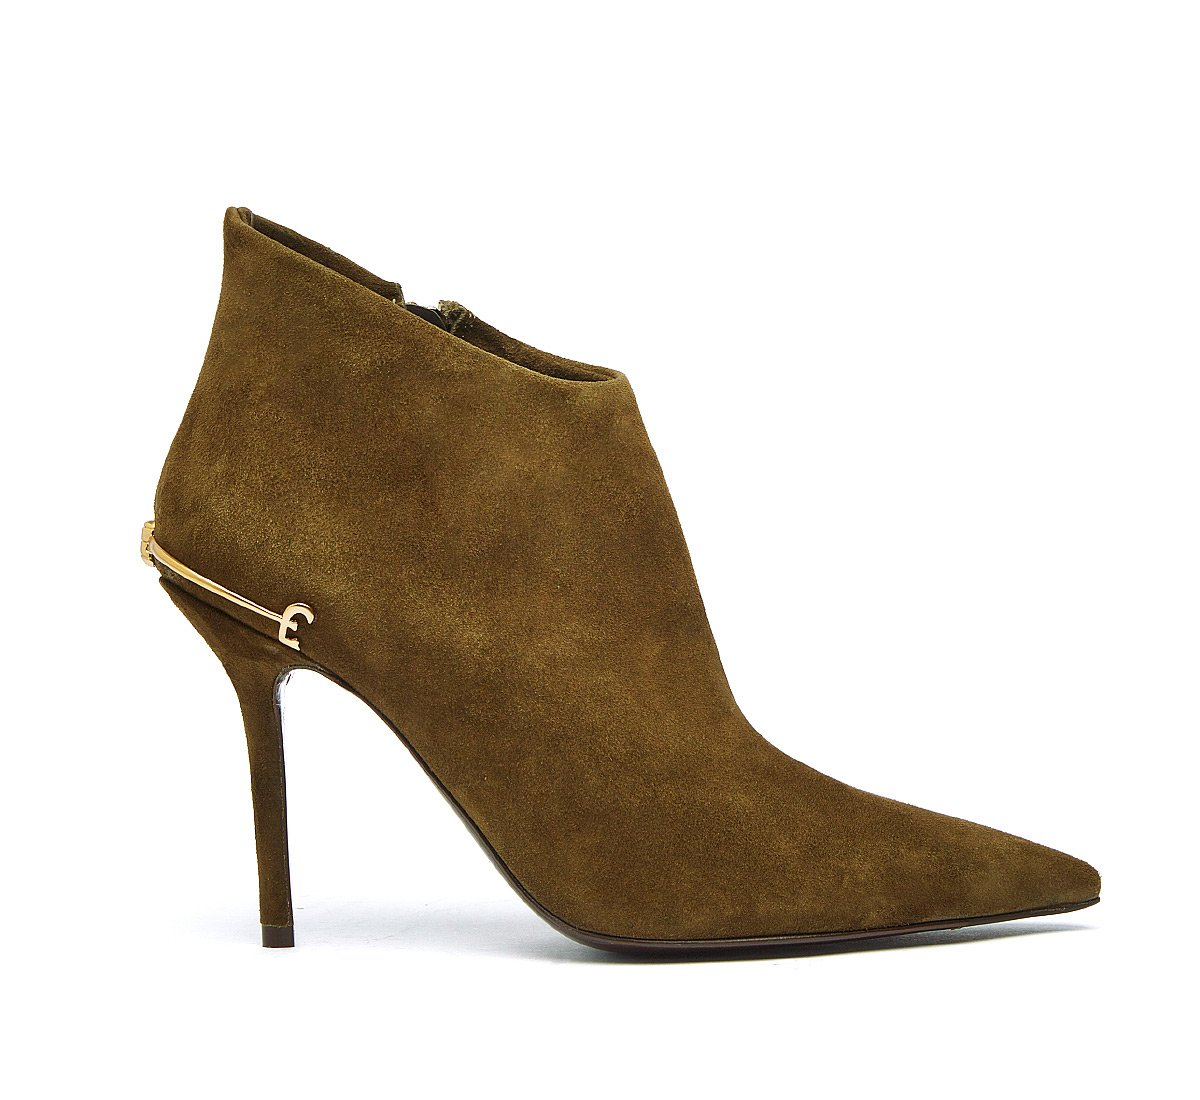 Ankle boots in very soft calf leather